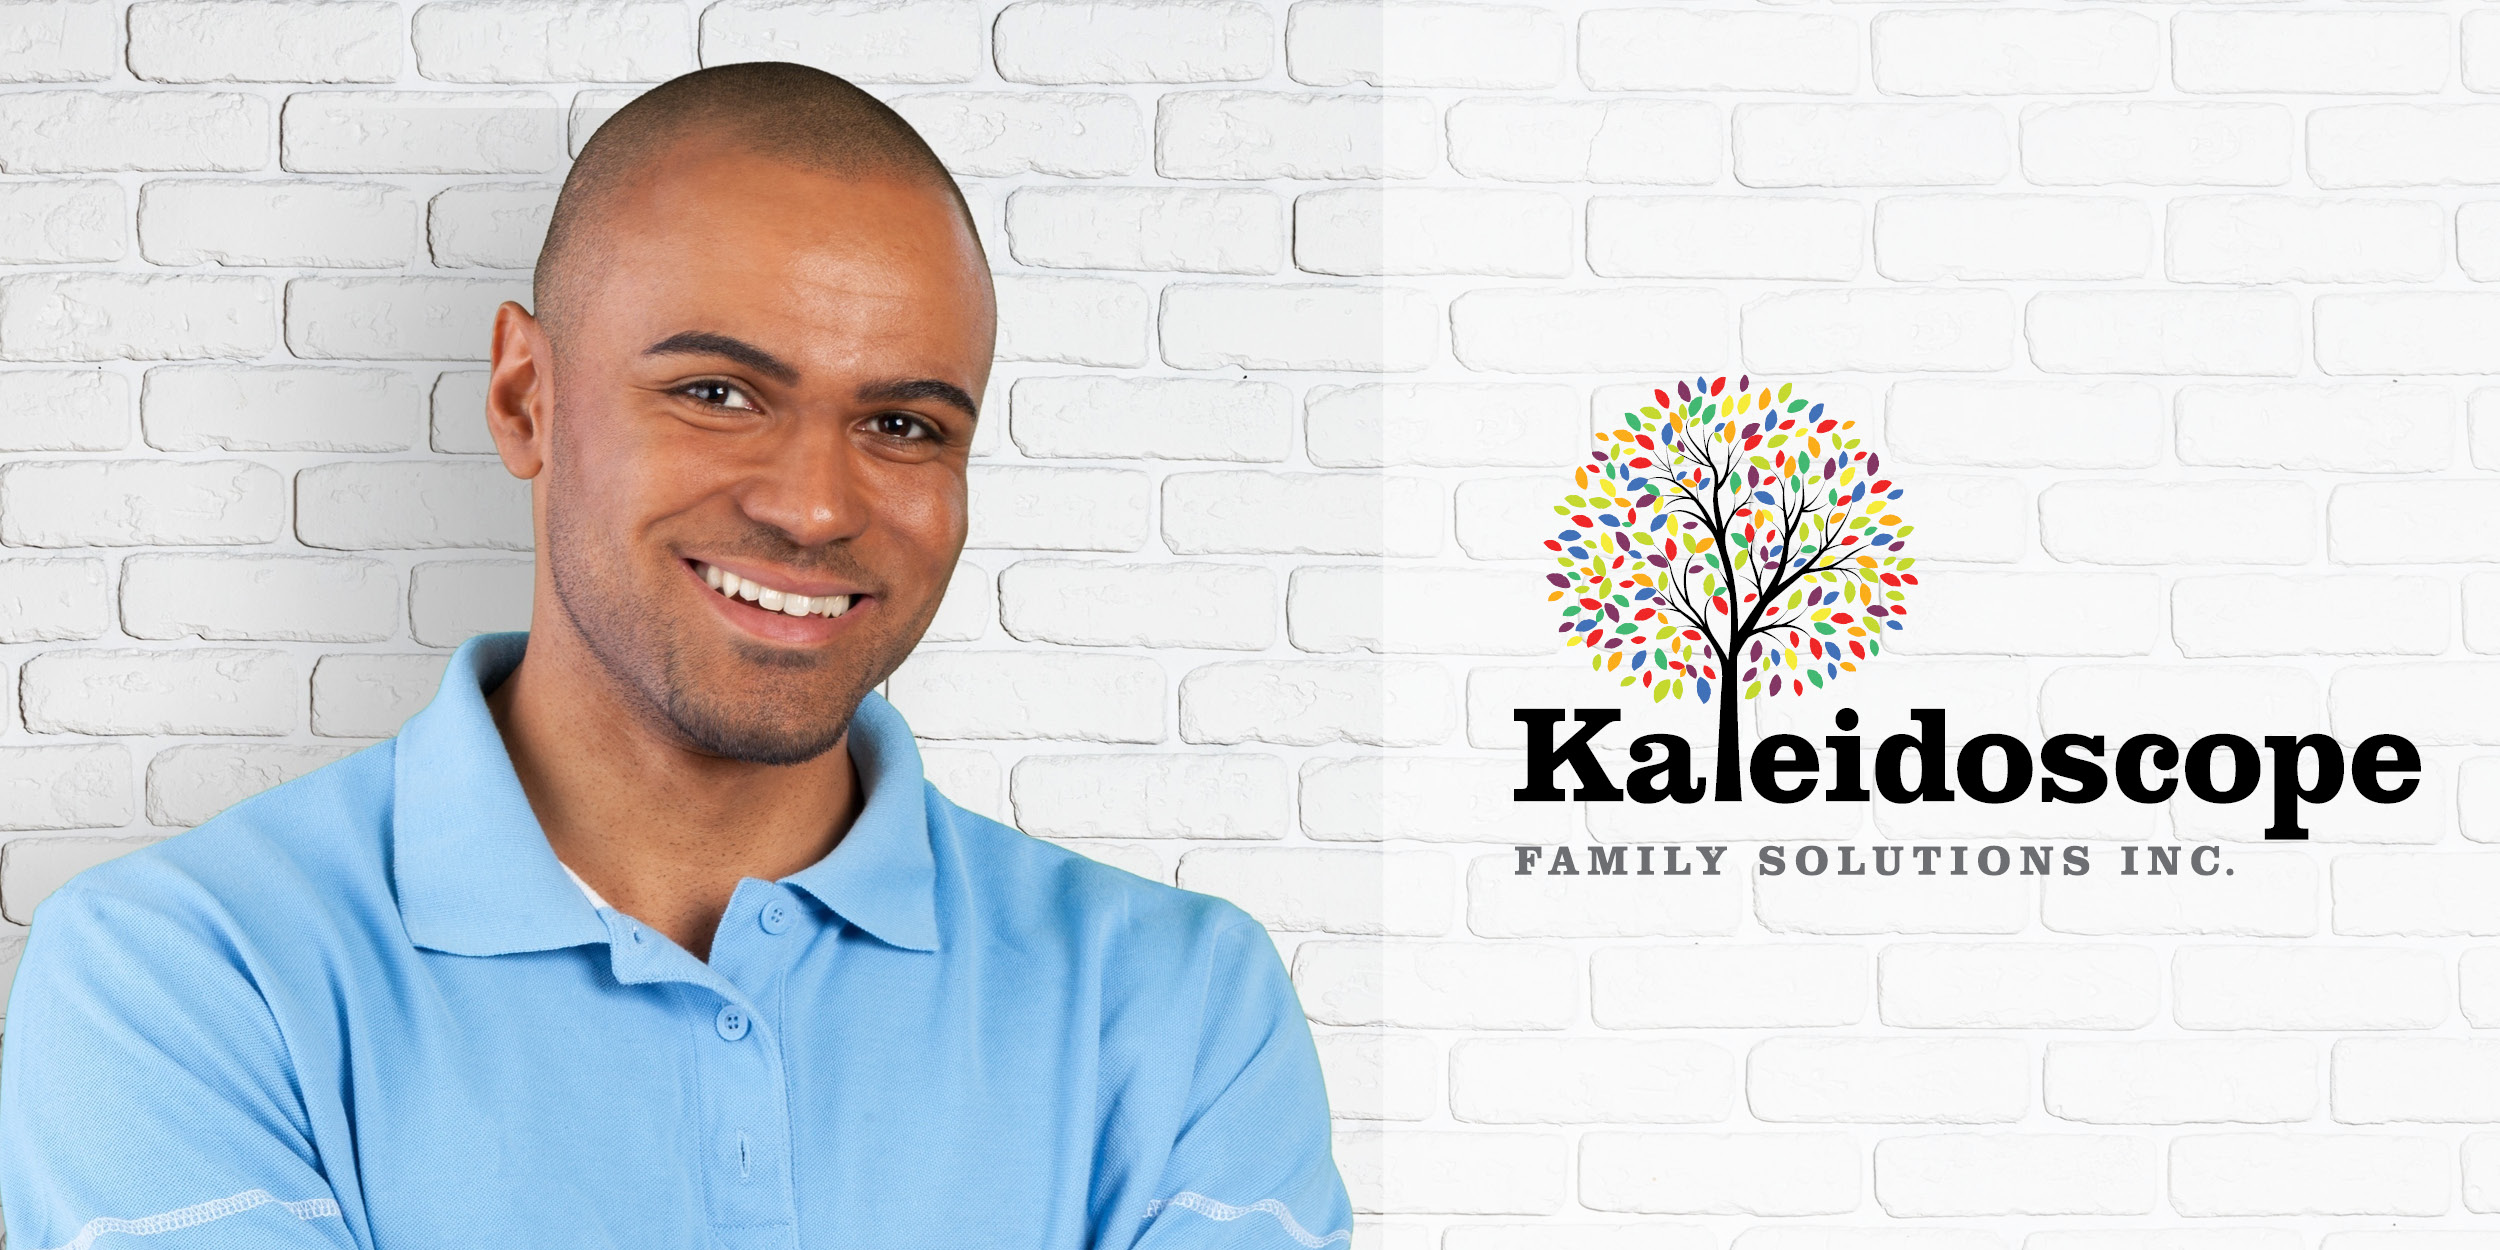 Kaleidoscope Family Solutions Inc - Mobile Therapist banner image